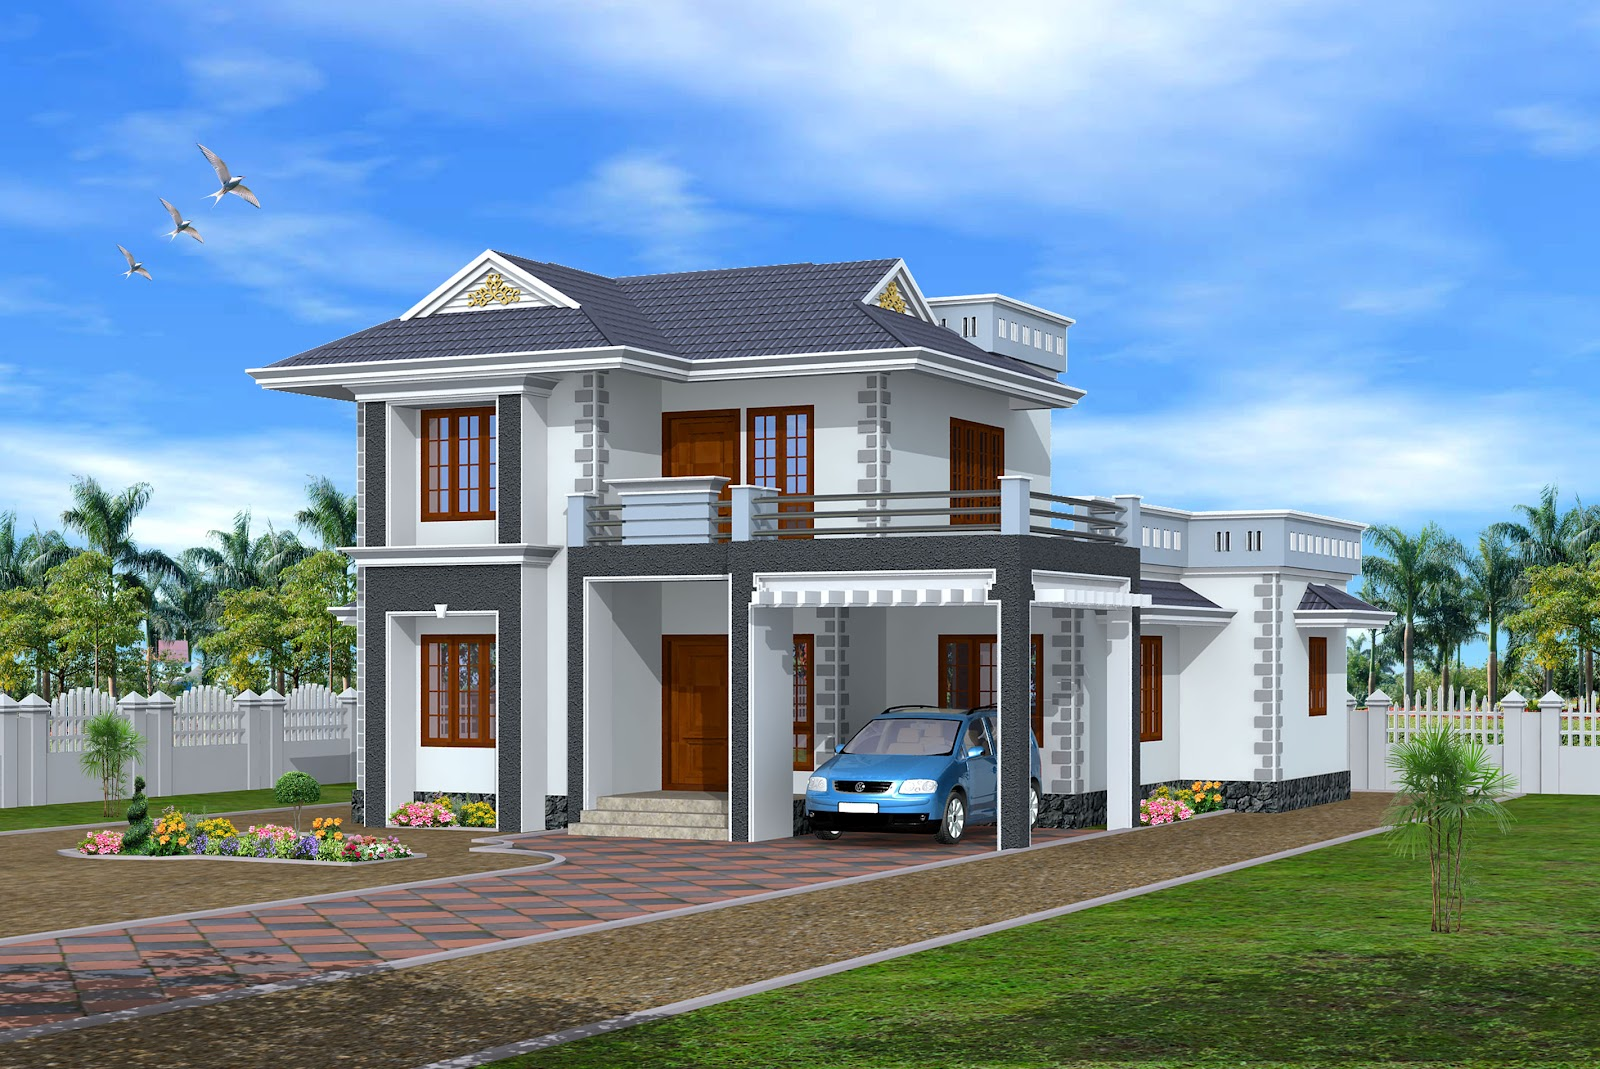 New home designs latest modern homes exterior designs views for Different interior designs of houses